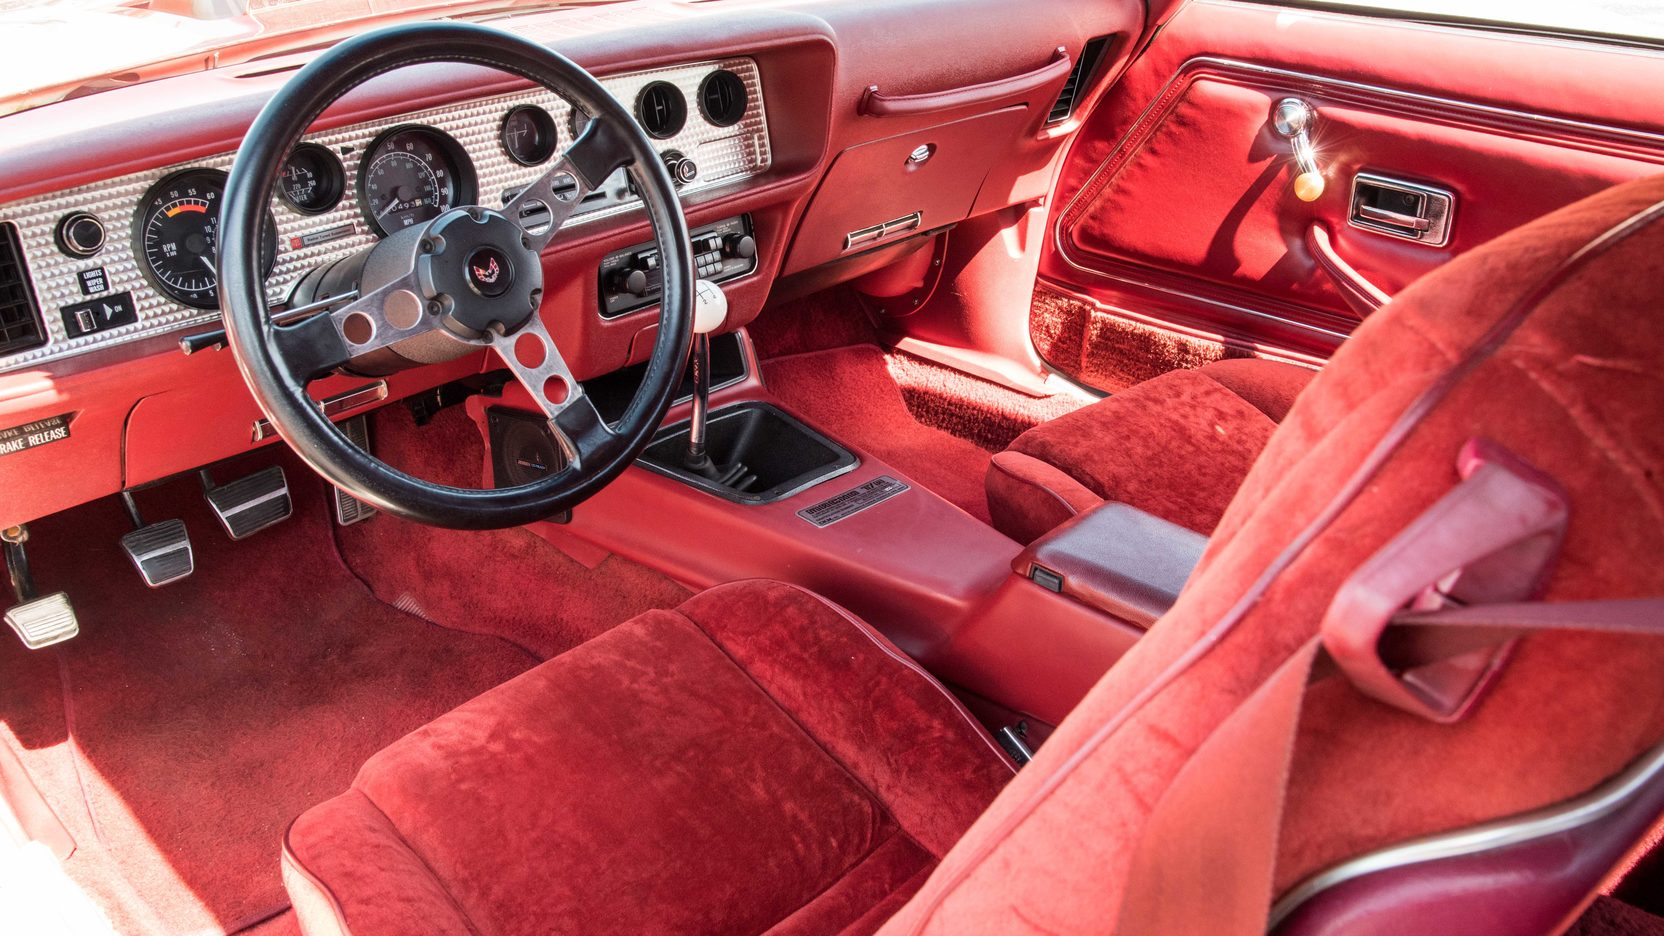 1978 Pontiac Macho Trans Am interior